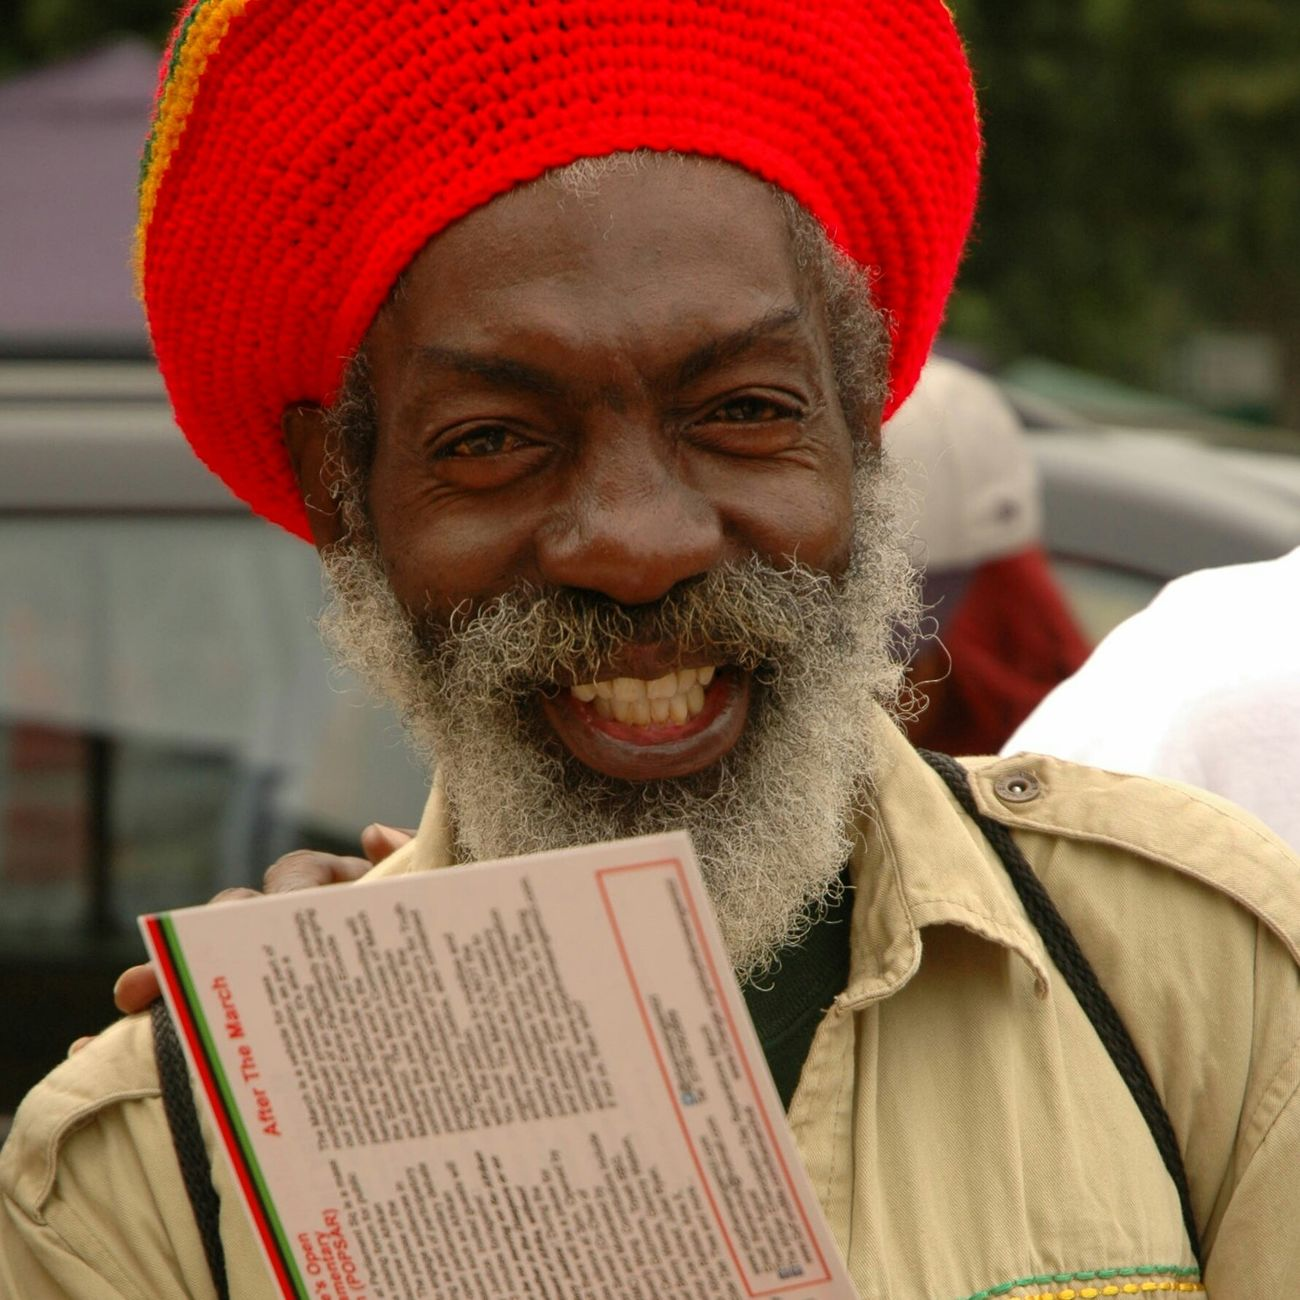 Portrait Marching March City Street City Man RASTA Street Photography Street Smile Senior Adult Grey Hair One Person One Man Only Outdoors Hat Togetherness Portraits Urban Locs Melanin Streetphotography Arts Culture And Entertainment Real People